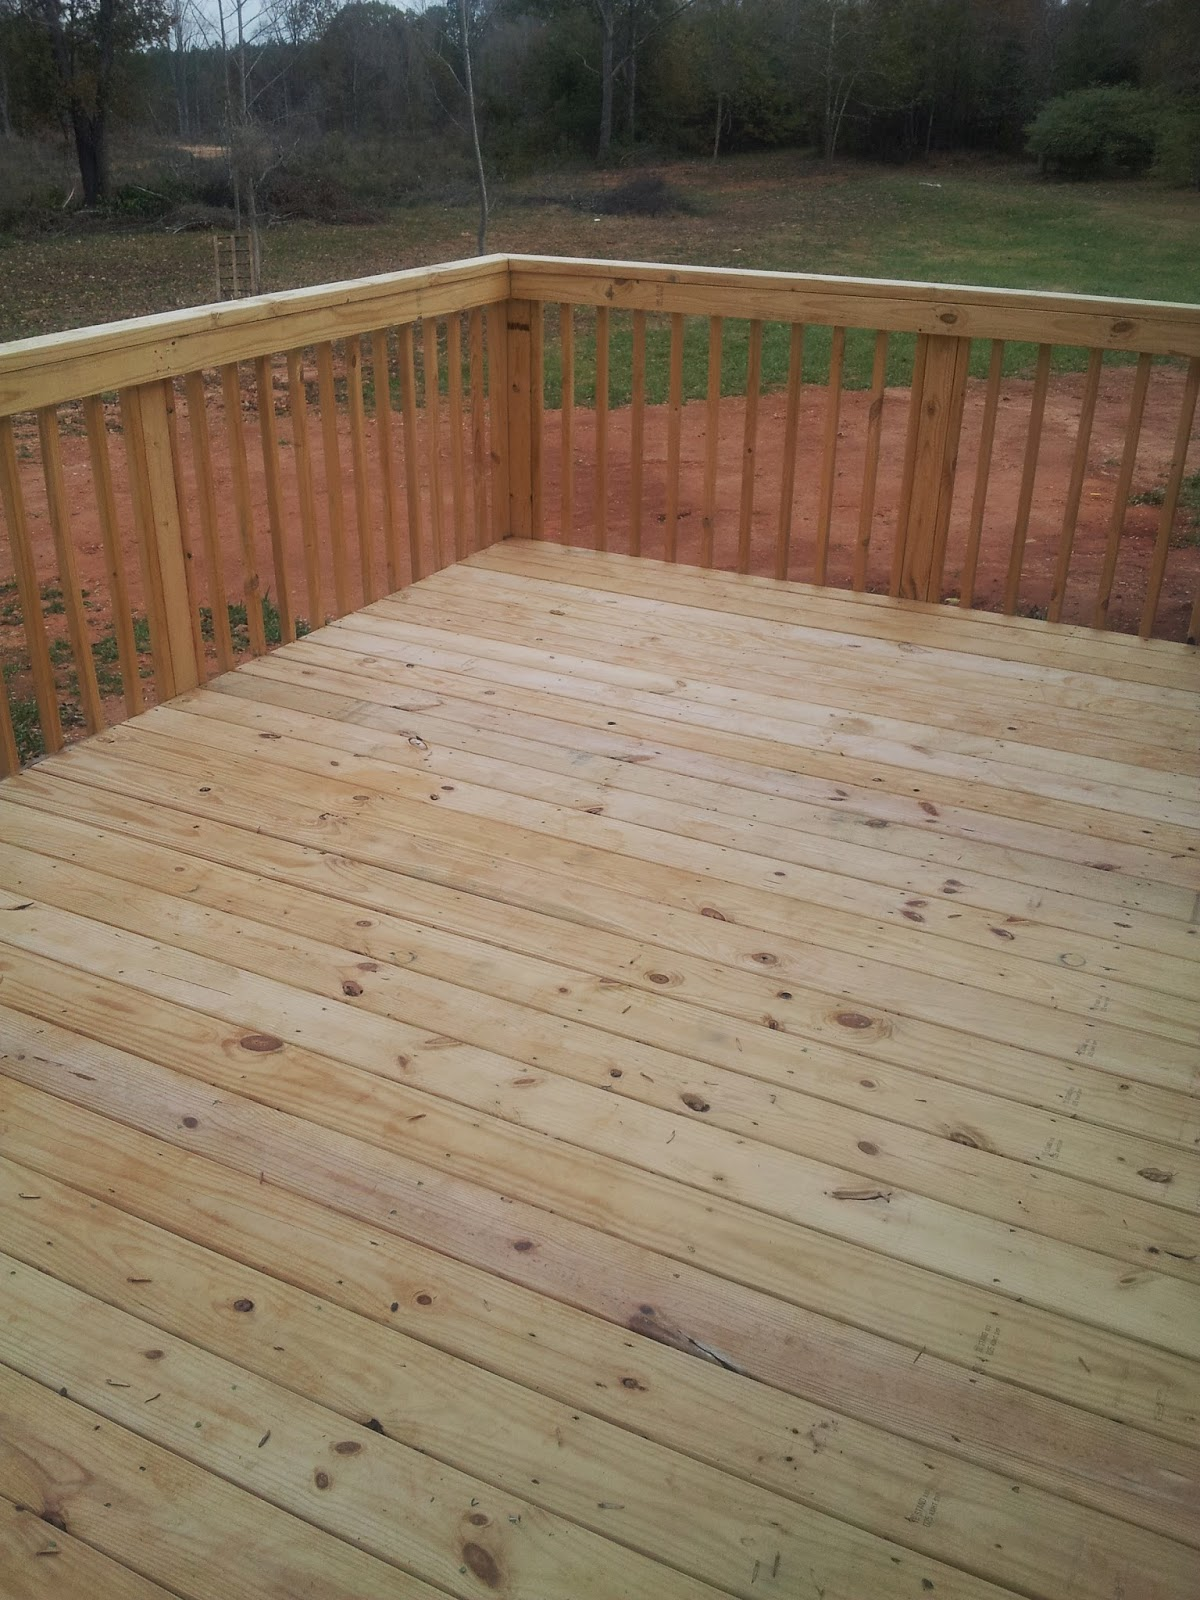 Spartanburg, house painters, deck staining, deck sealing, Spartanburg painters